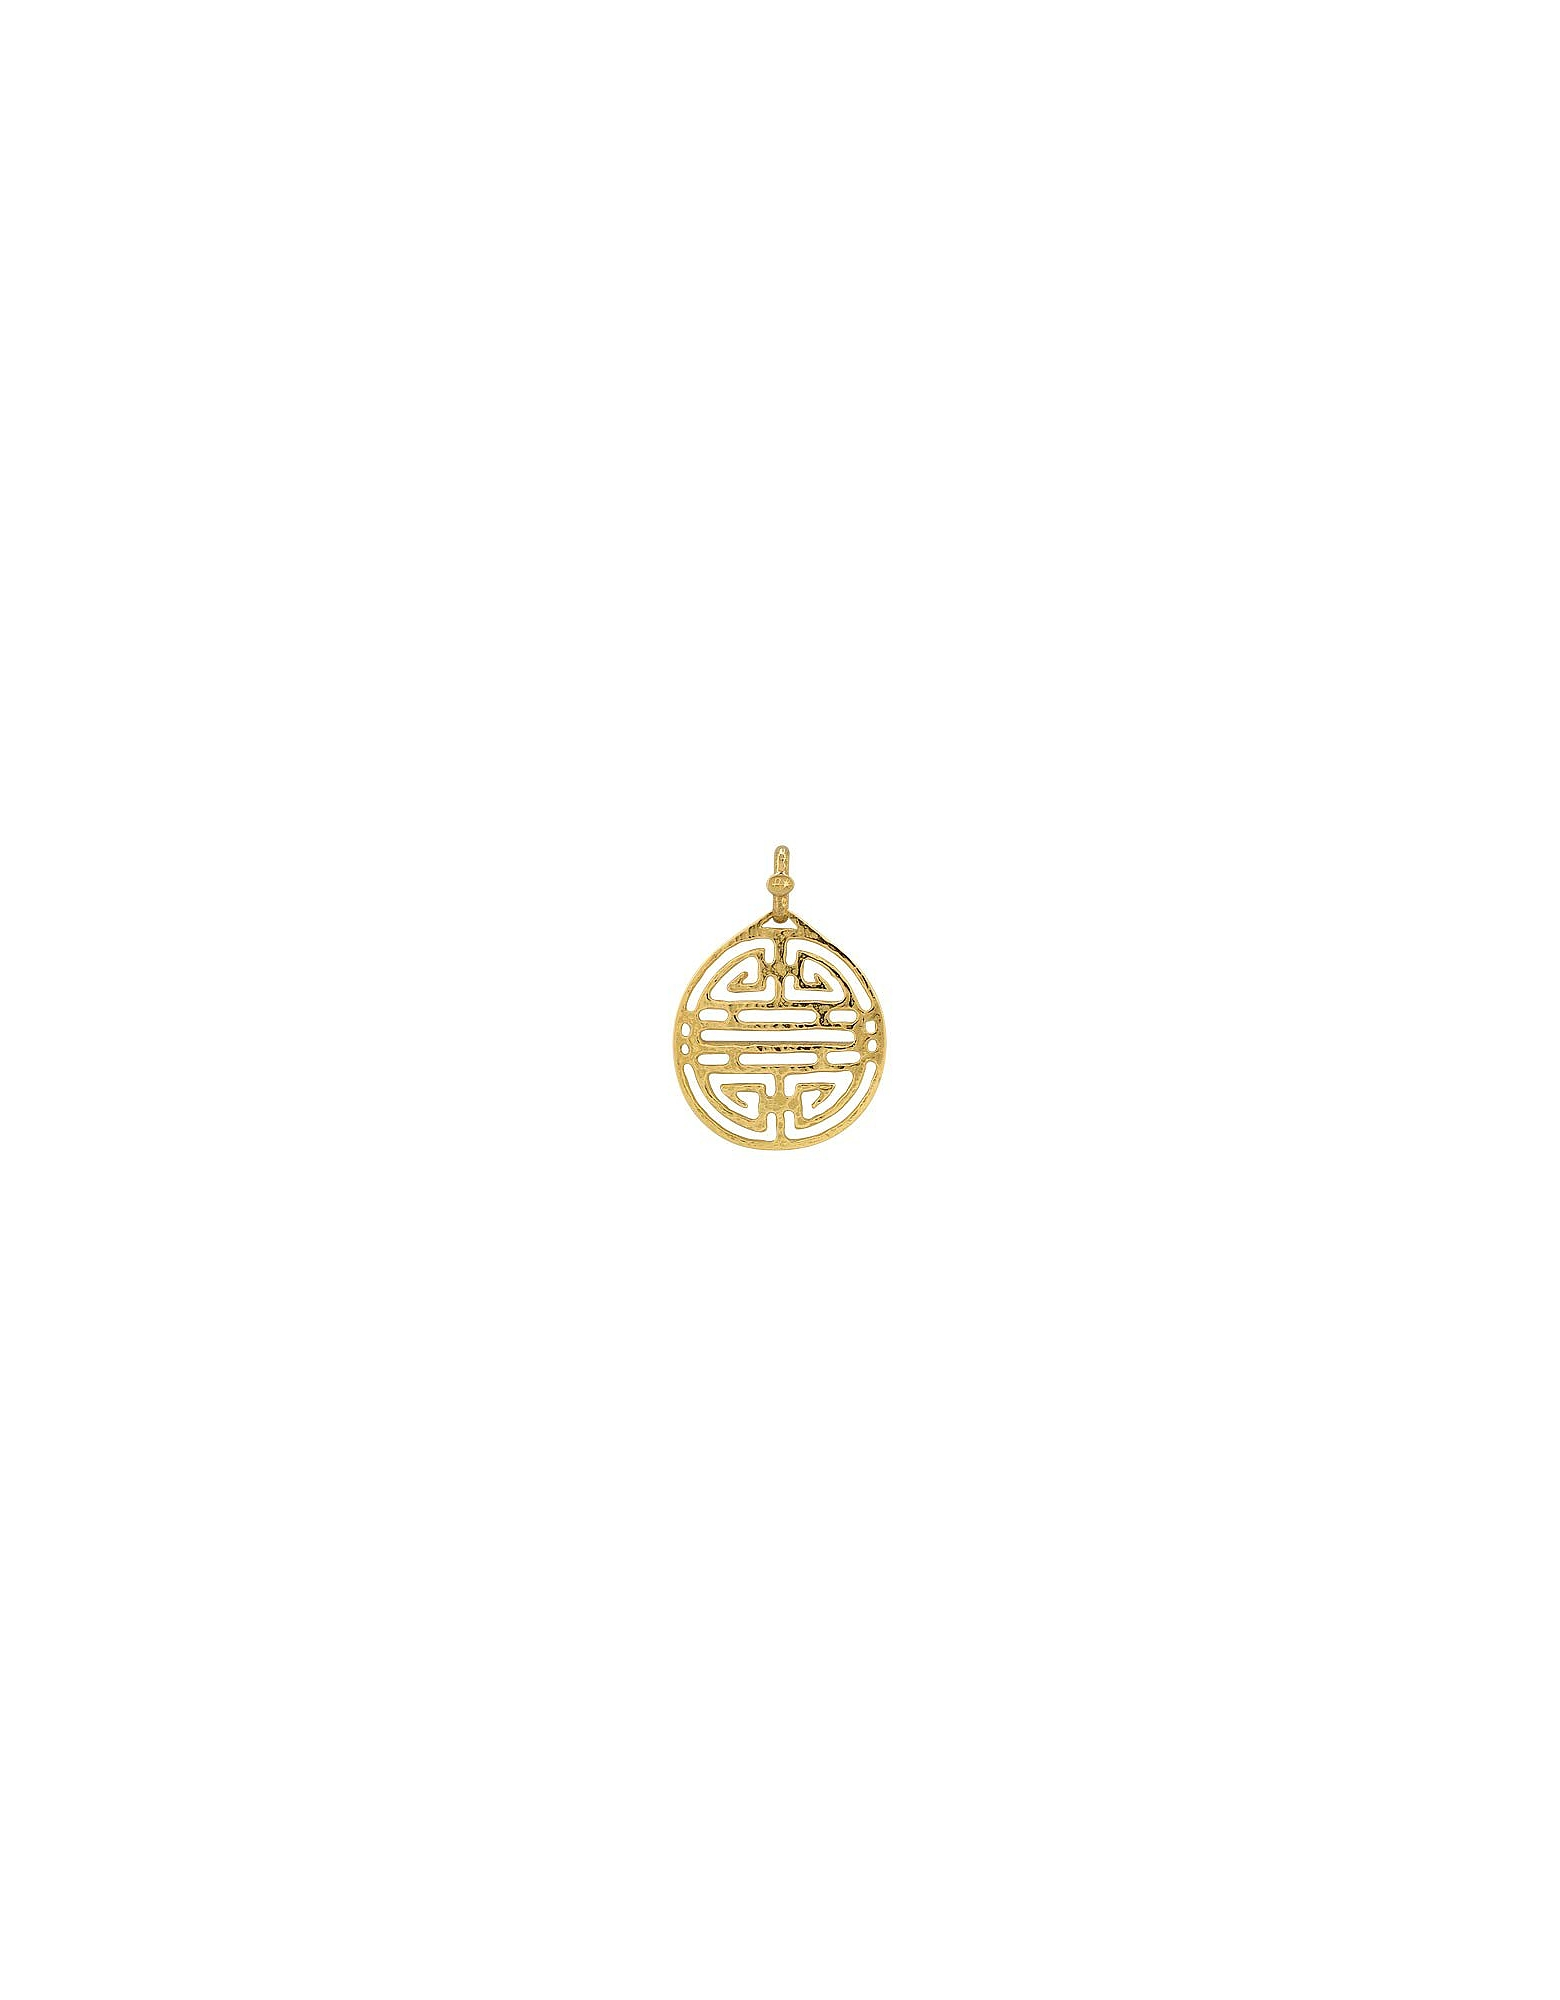 Torrini Necklaces, Chinese Labyrinth - 18k Yellow Gold Pendant